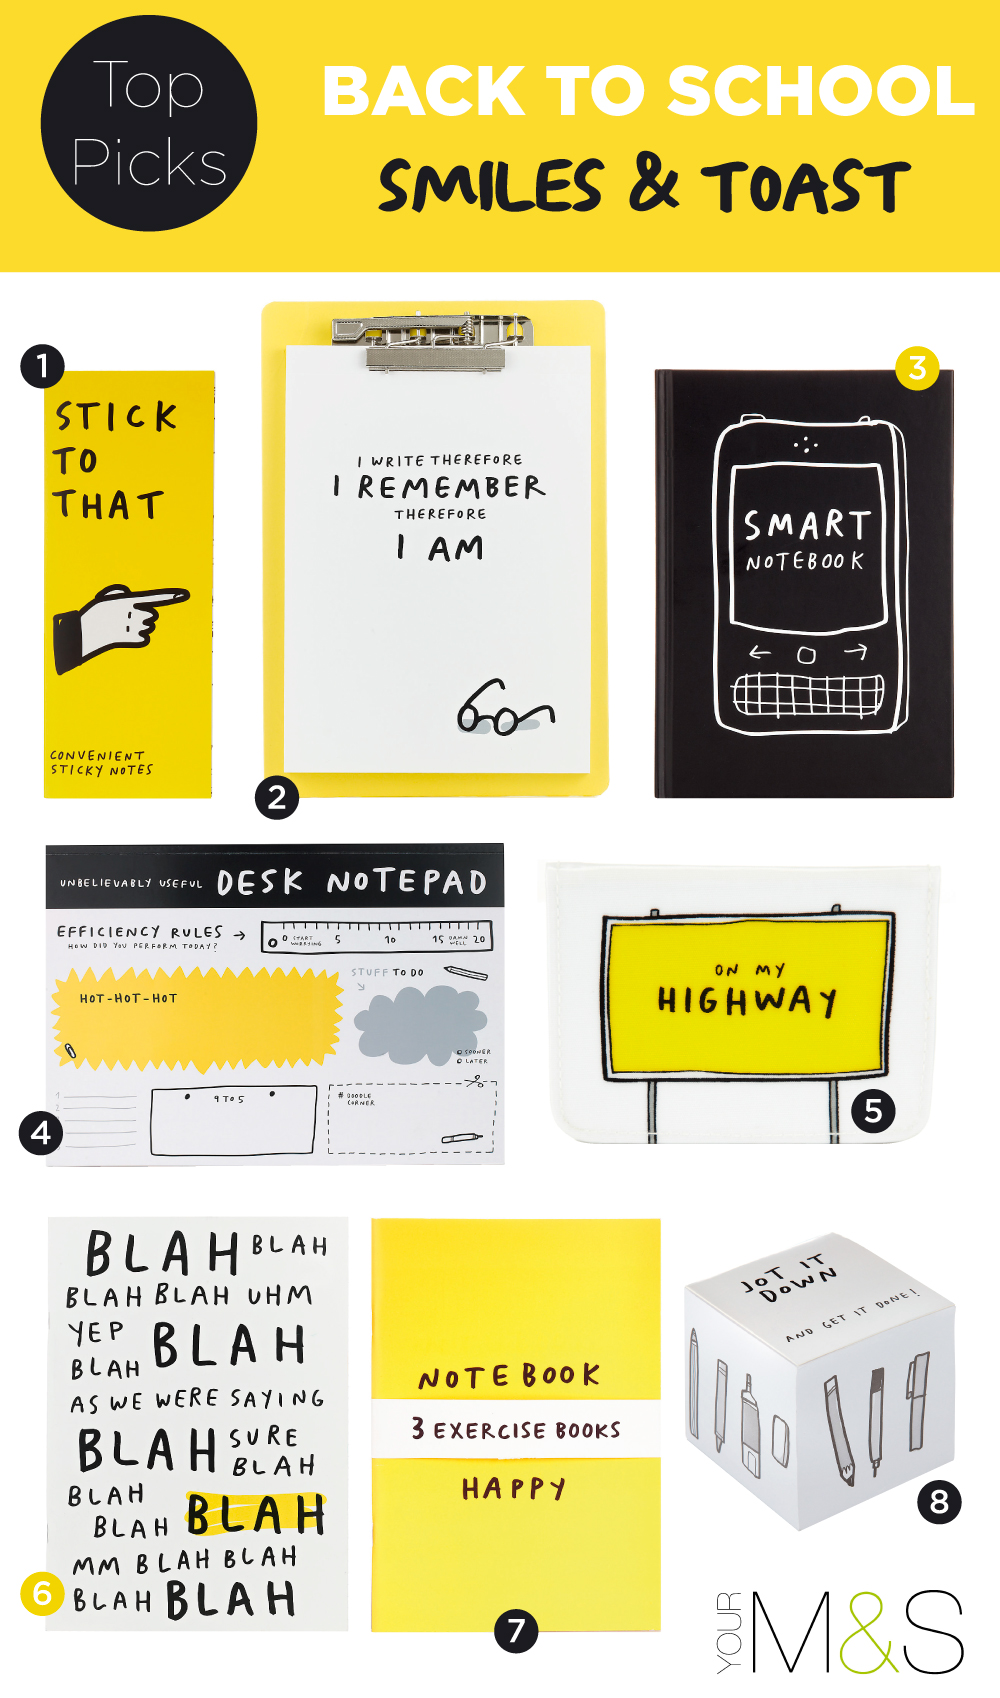 1. Sticky Notes Book2. Clipboard with Notepad 3. Hardback Dot Grid Notebook 4. Desktop Notepad 5. Fabric Travel Card Wallet 6. Lined Exercise Book 7. Set of 3 Exercise Books 8.Jotter Block.